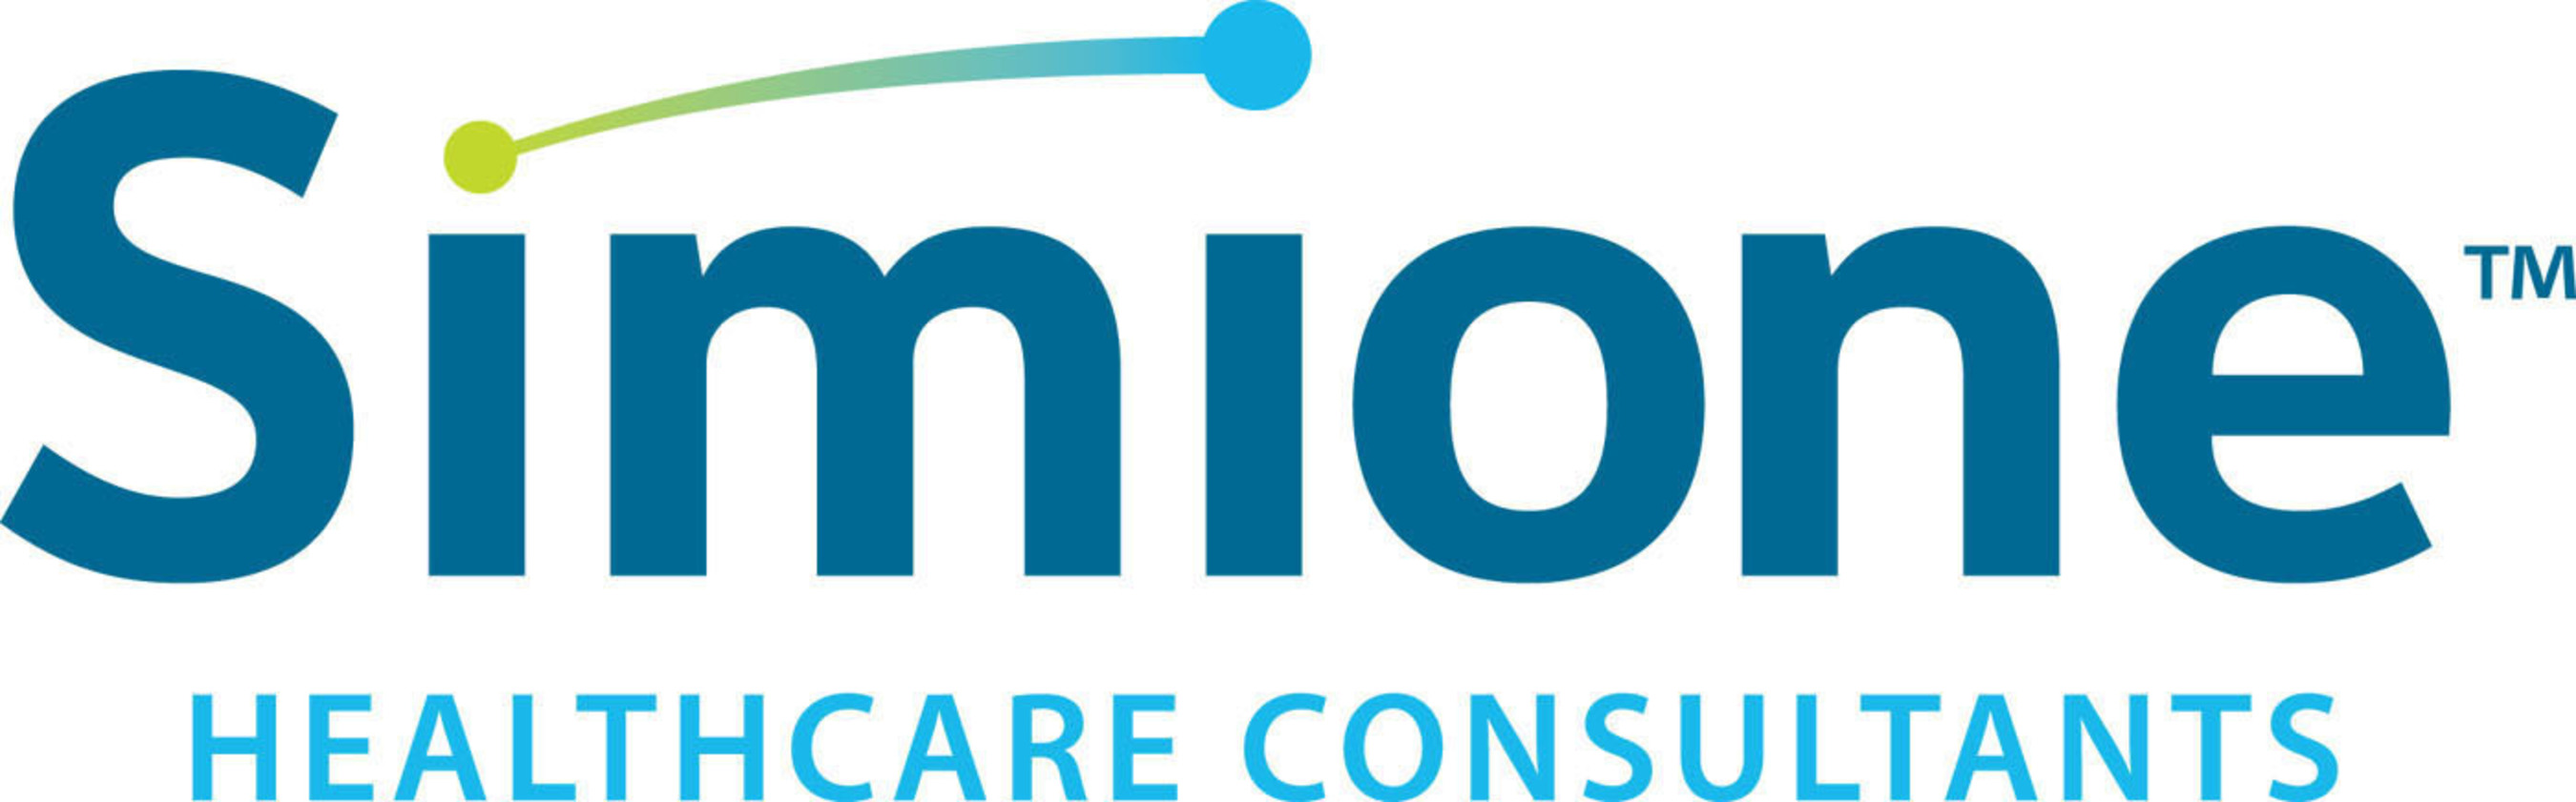 Simione Healthcare Consultants Provides Healthy Business Solutions for Home Care and Hospice.